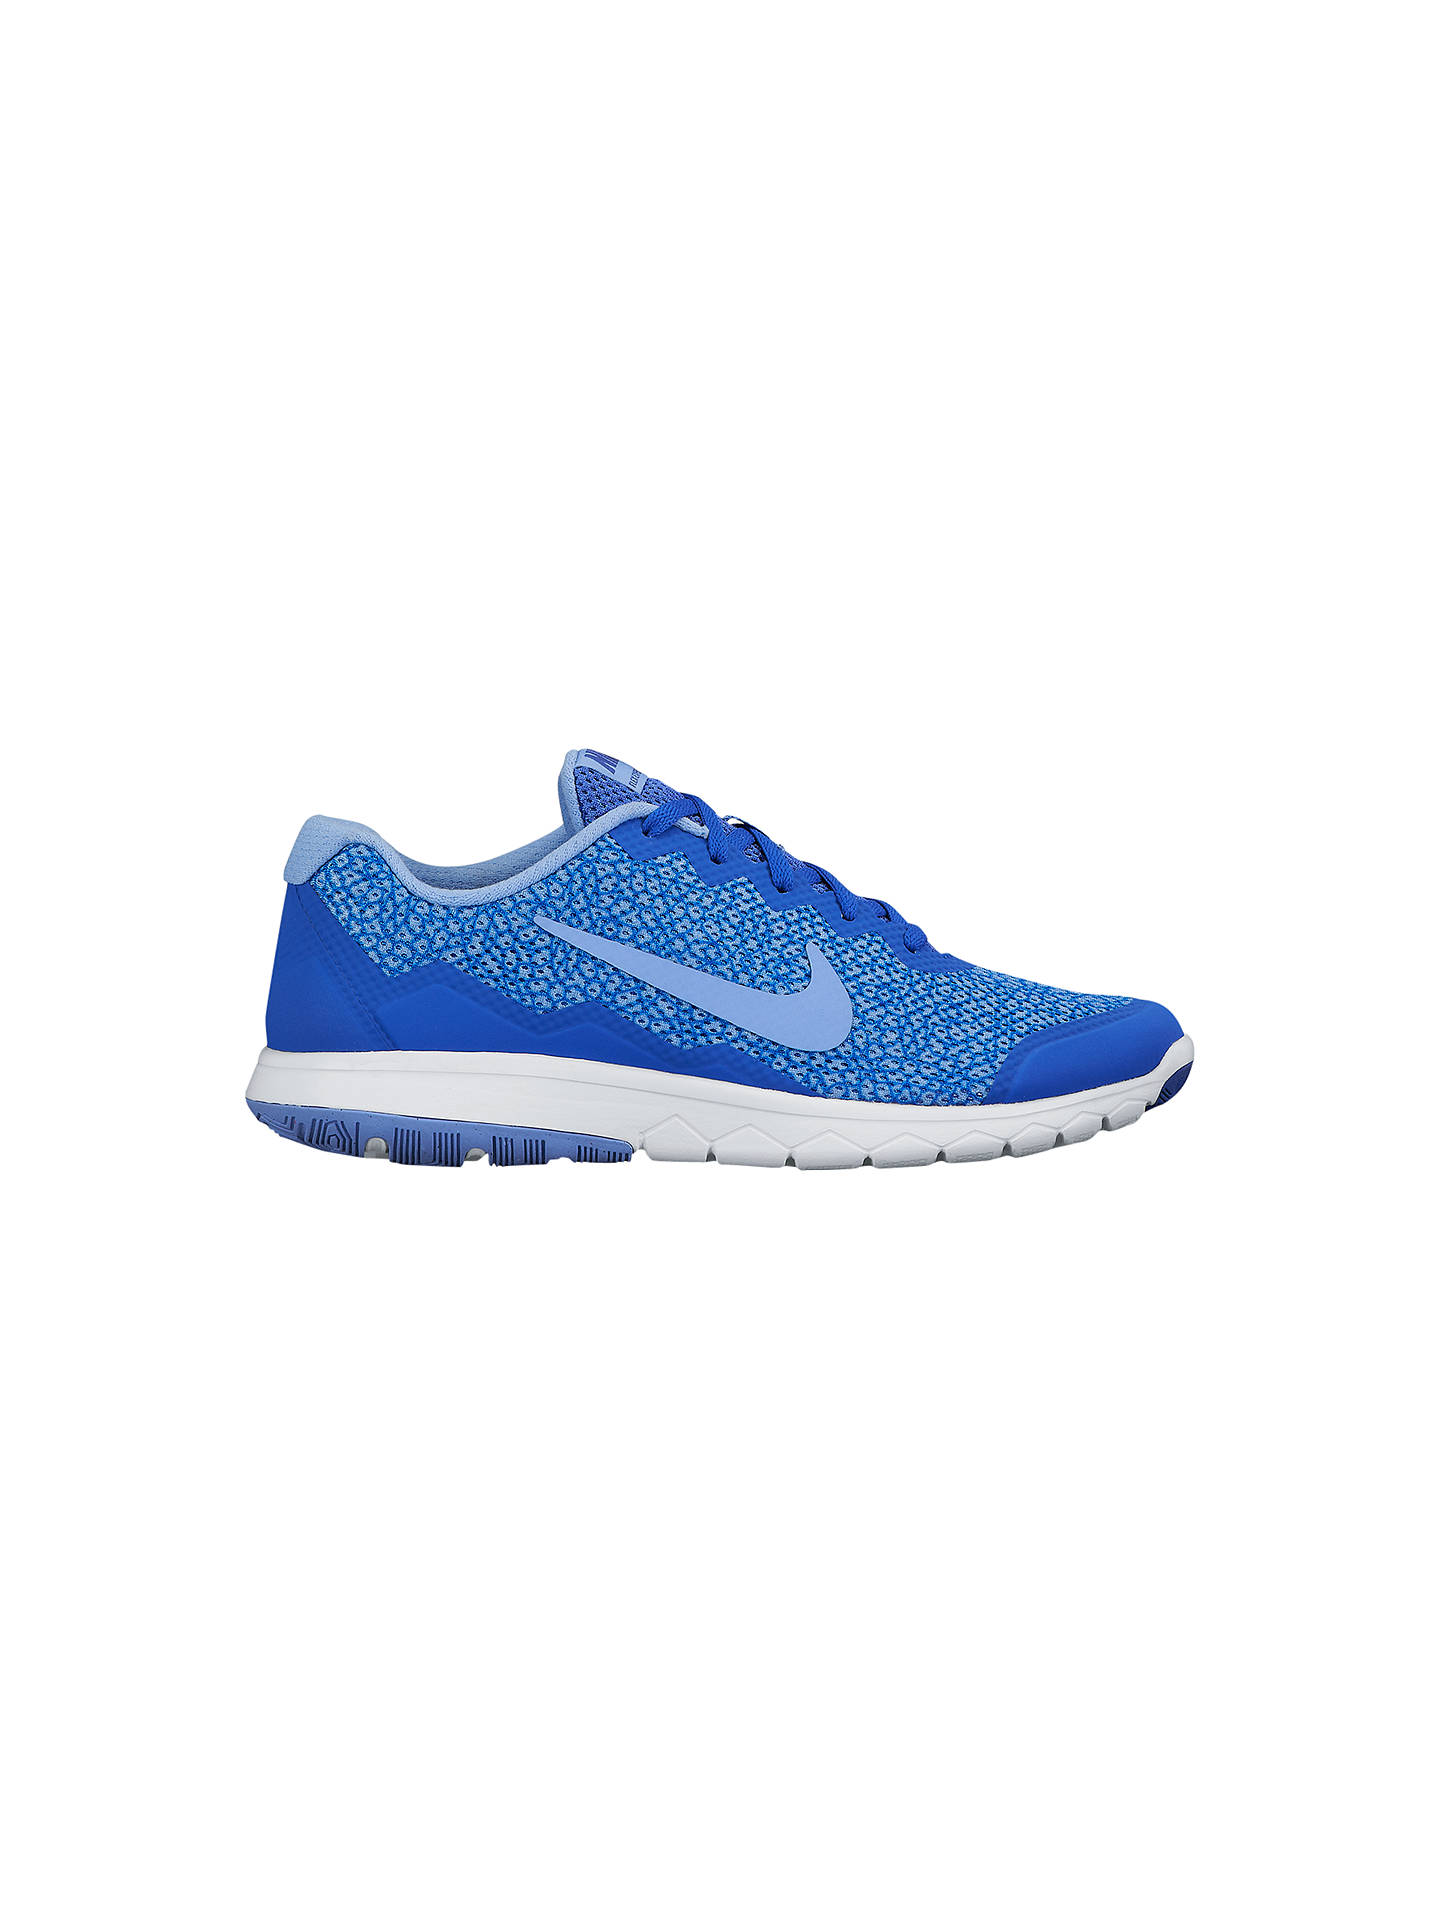 745469c1b9e8 Buy Nike Flex Experience Run 4 Premium Women s Running Shoes